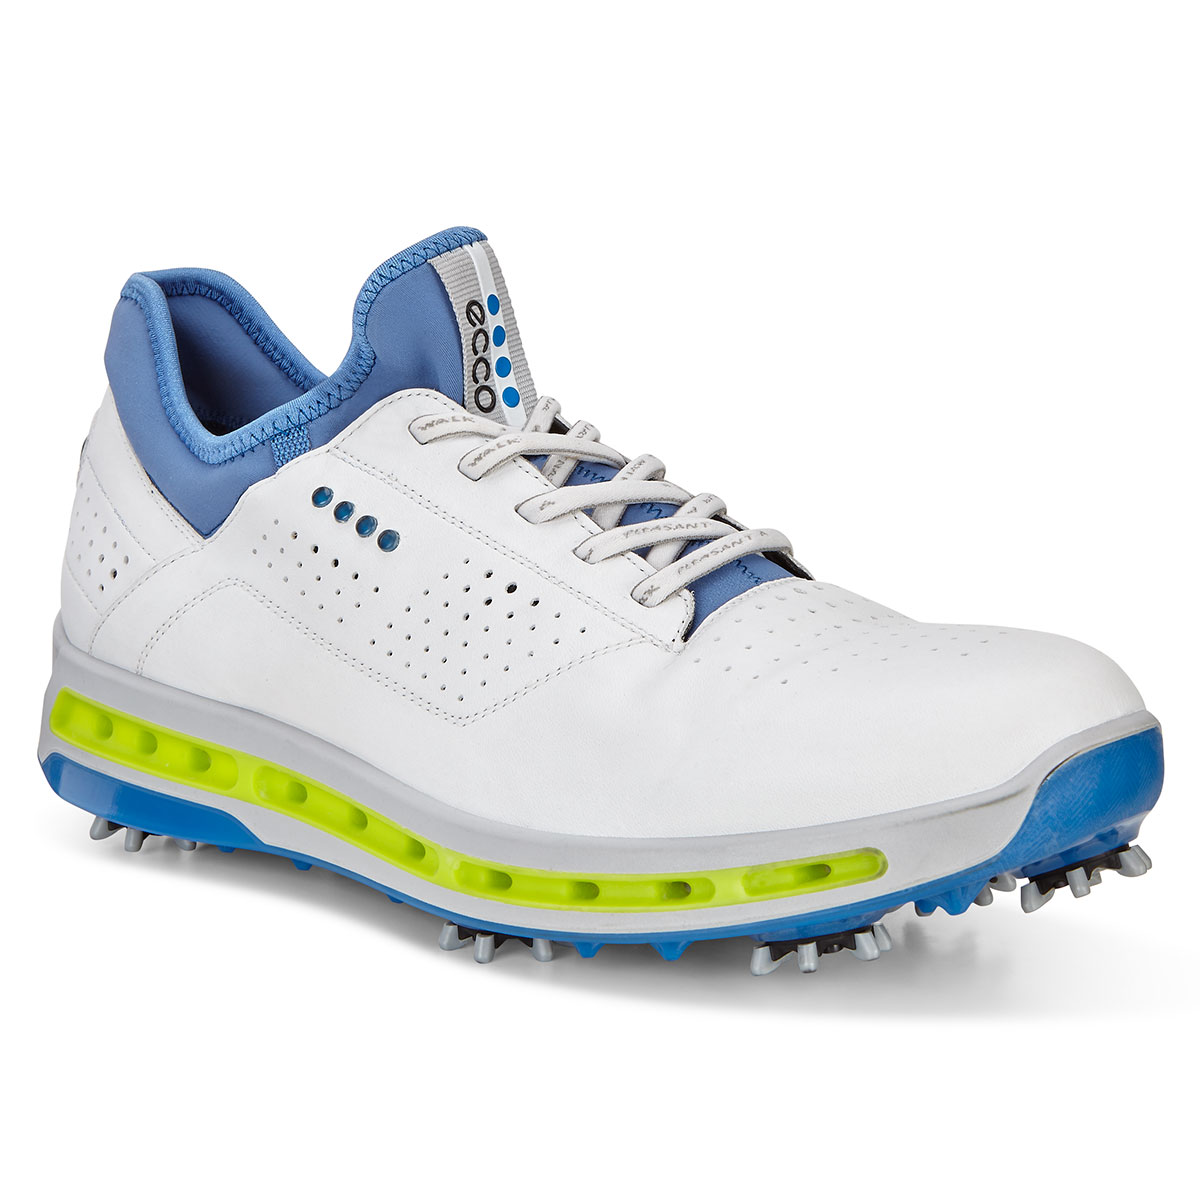 Ecco-2017-Mens-Cool-GoreTex-Breathable-Waterproof-Performance-Comfort-Golf-Shoes